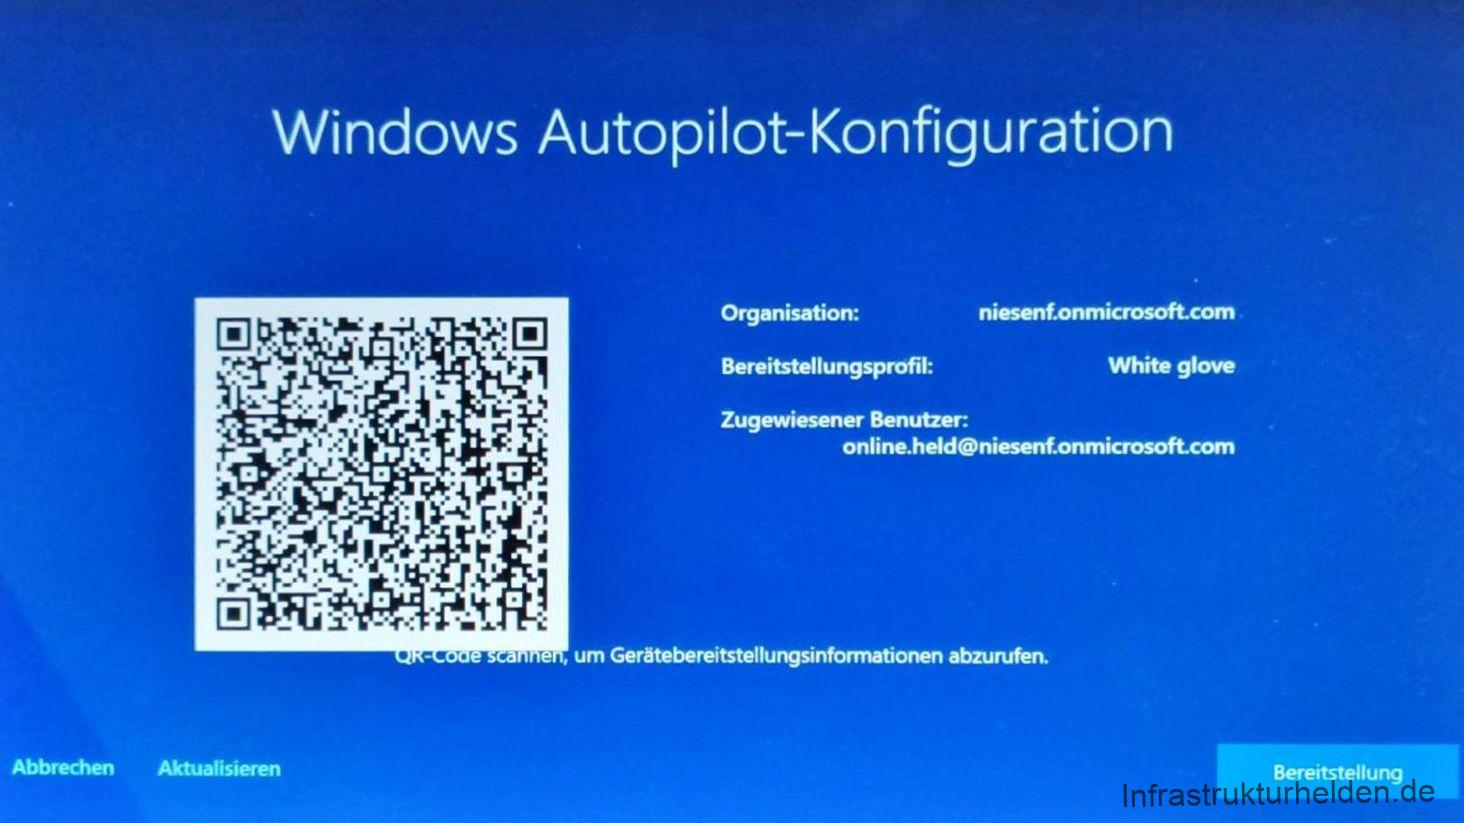 New for Autopilot with Windows 10 1903 (Updated)